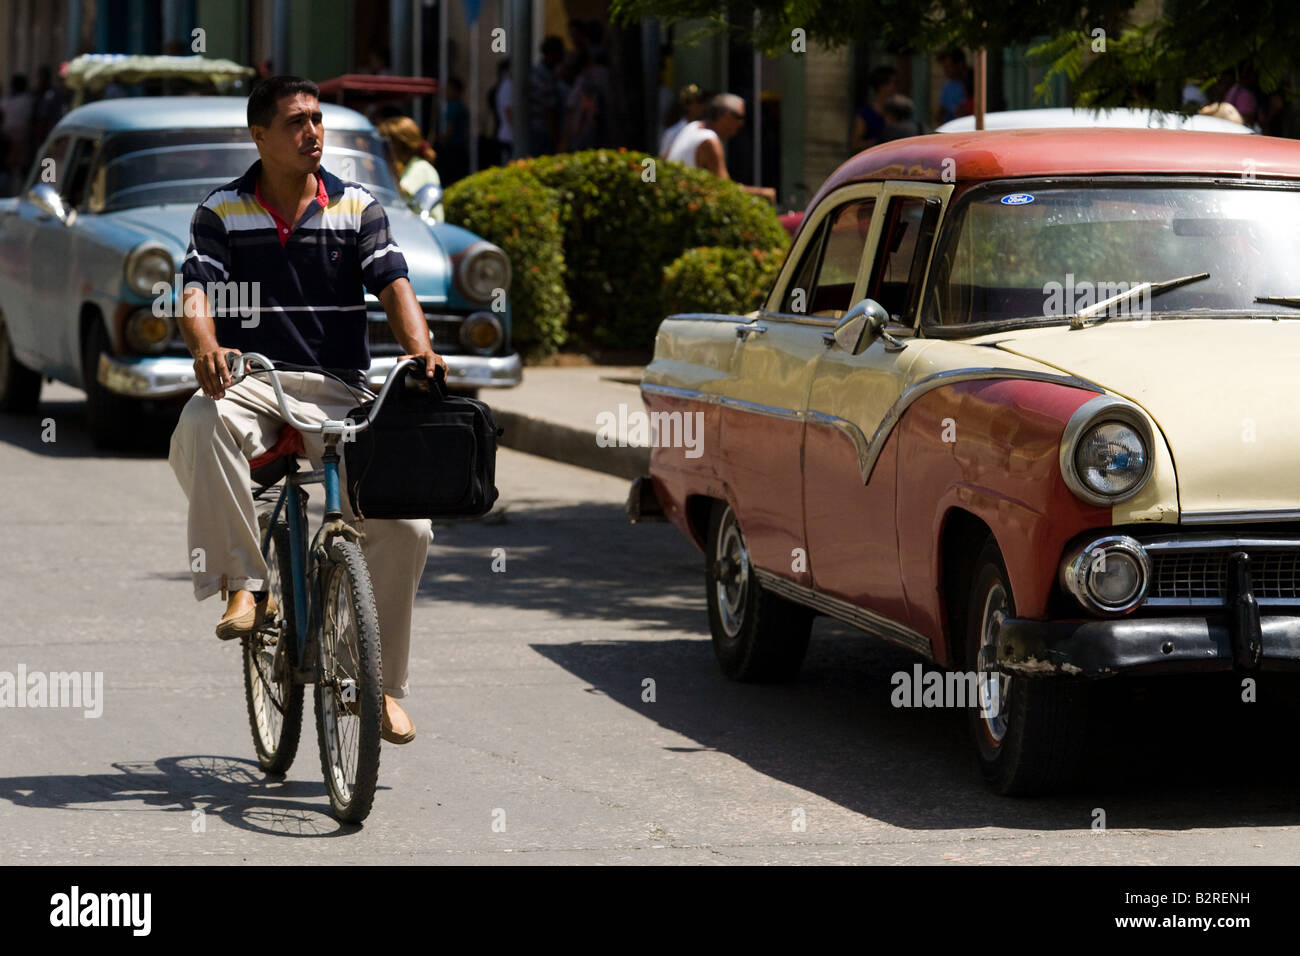 Old American Cars Stock Photos & Old American Cars Stock Images - Alamy